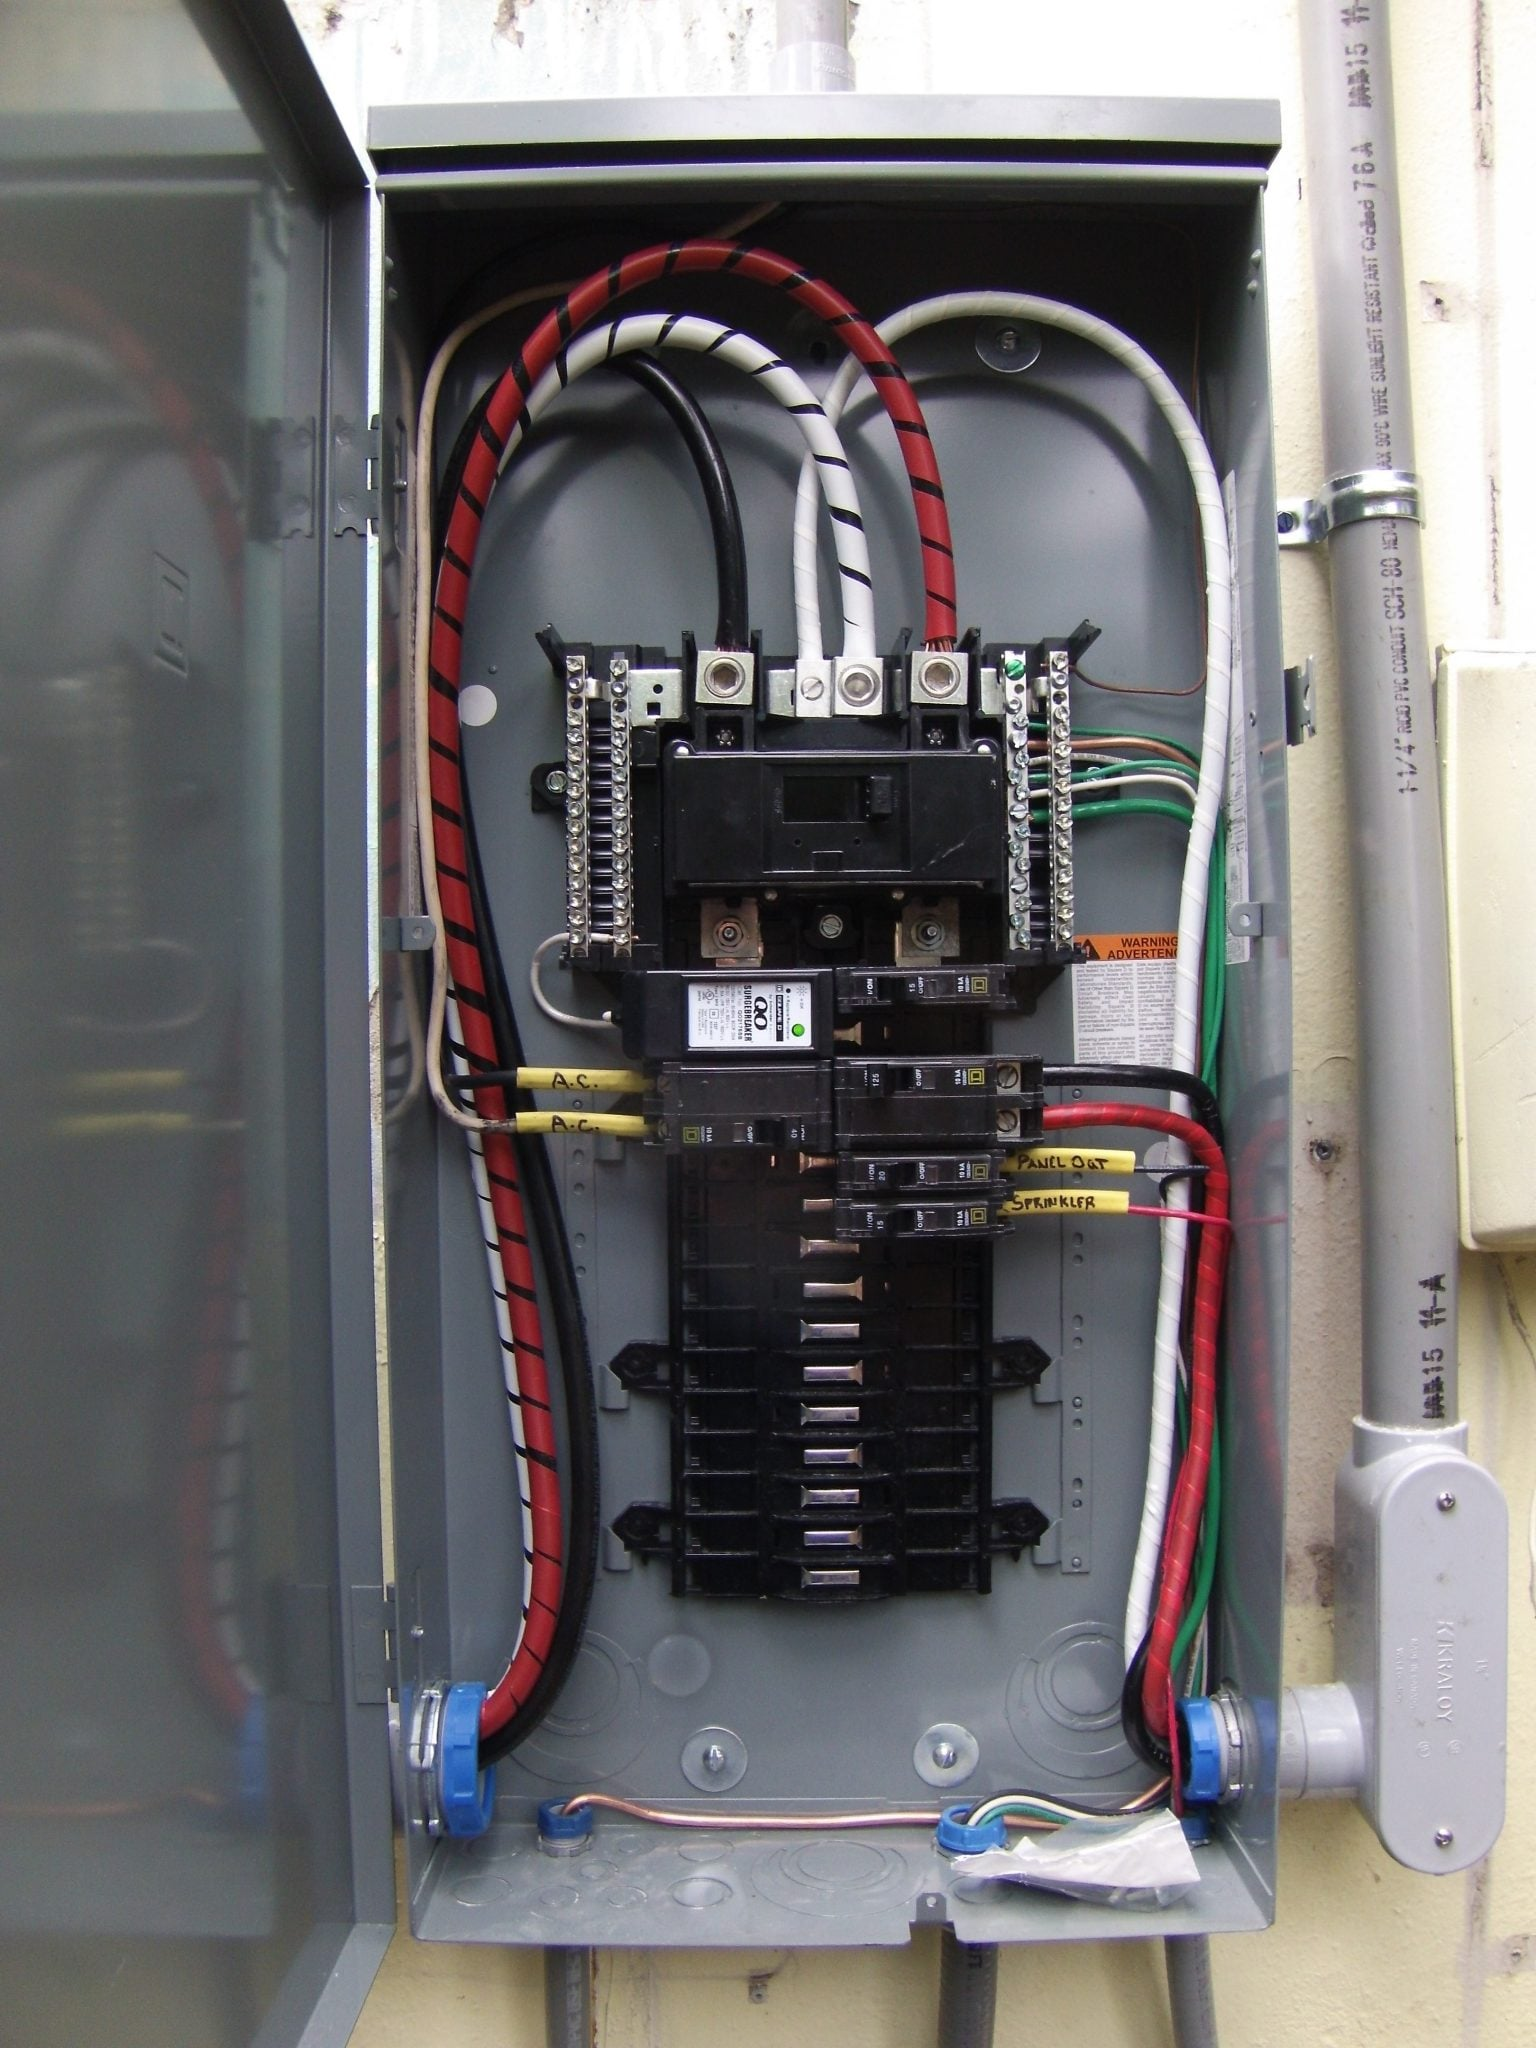 hight resolution of we have removed the mast meter fpe main and the sub feeds we have installed a new 200 amp meter can with 2 pipe and 2 0 wire for new mast